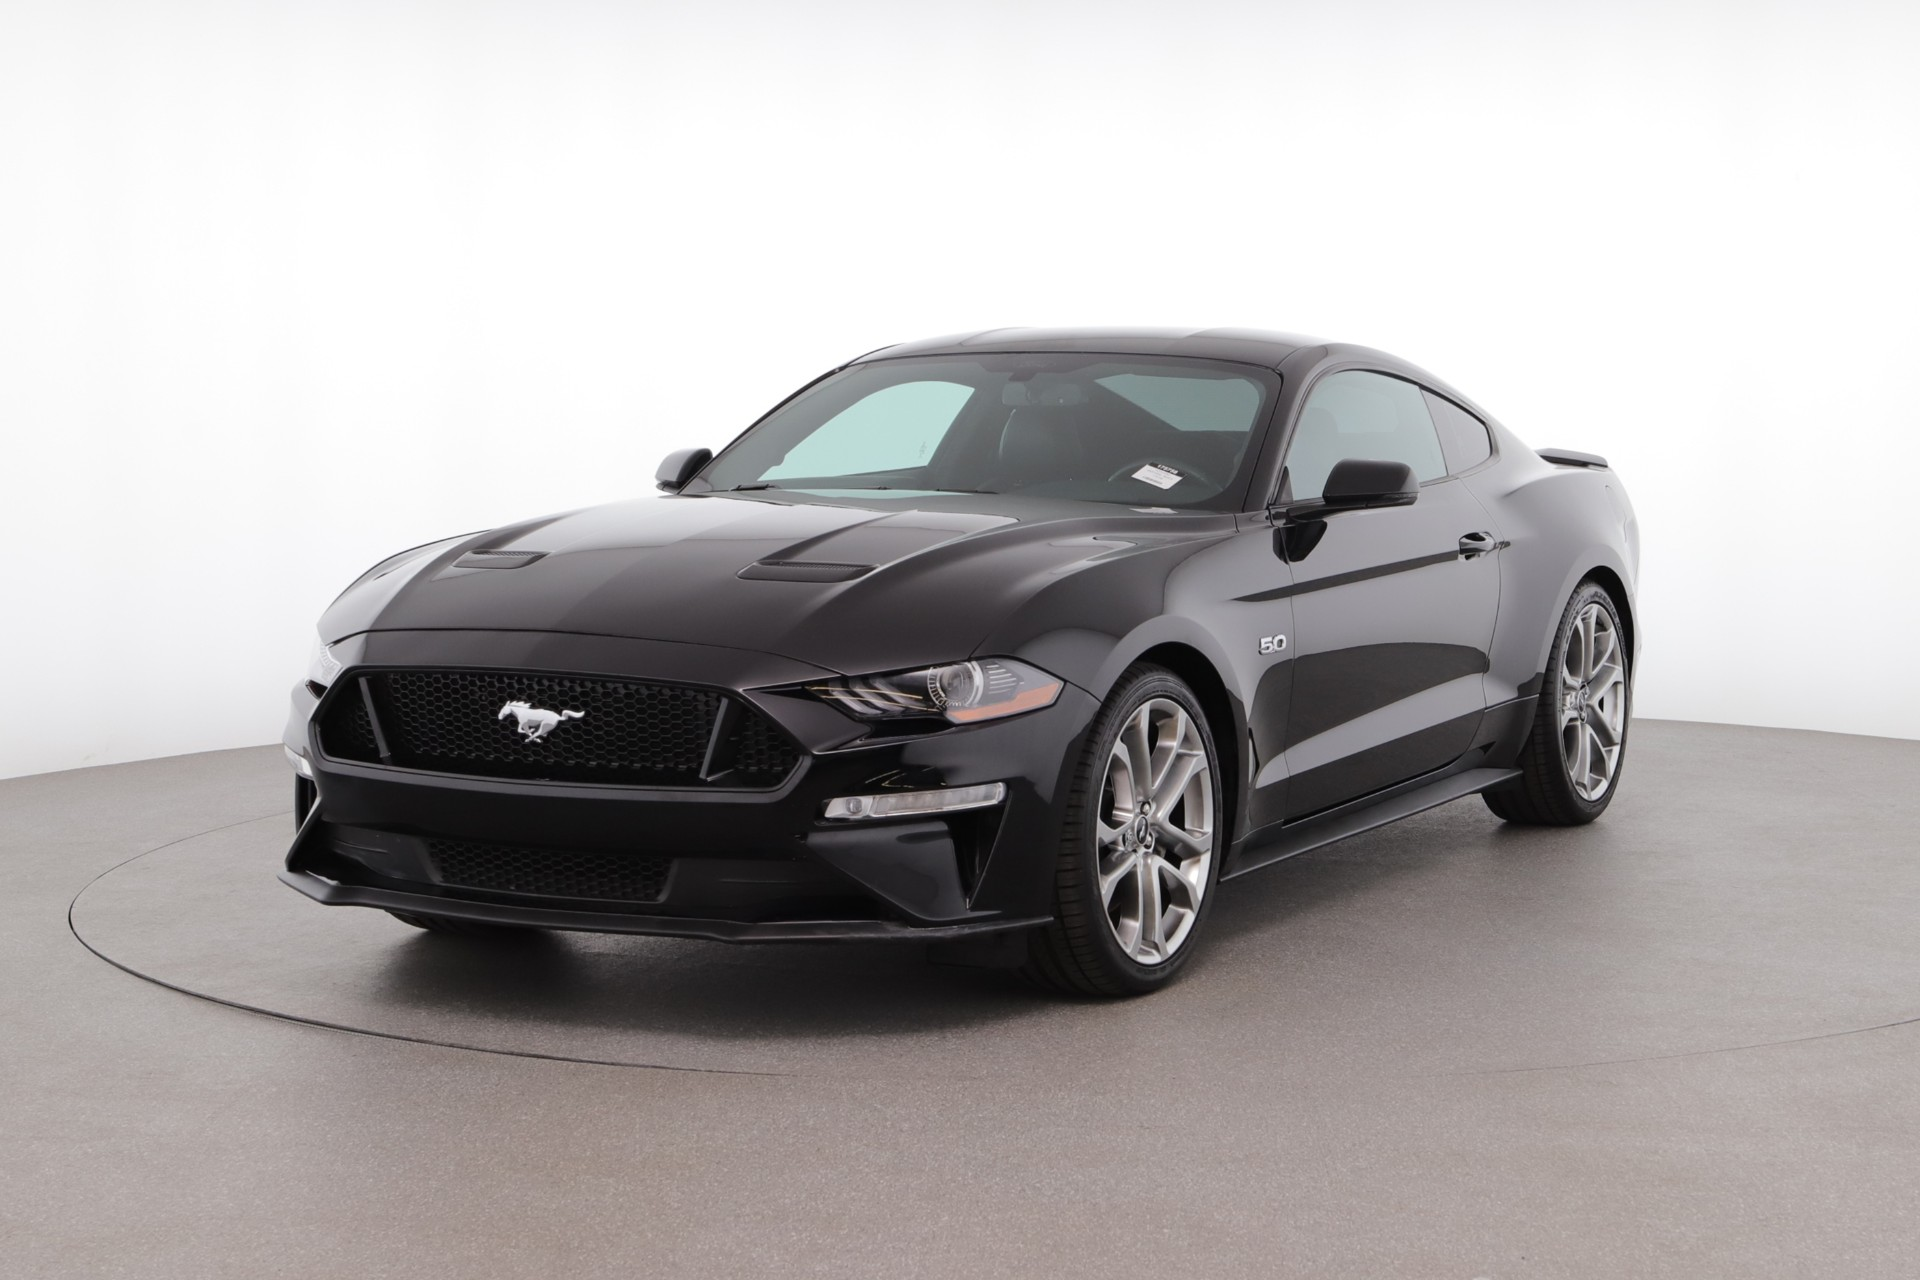 2019 Ford Mustang GT Premium (from $41,500)